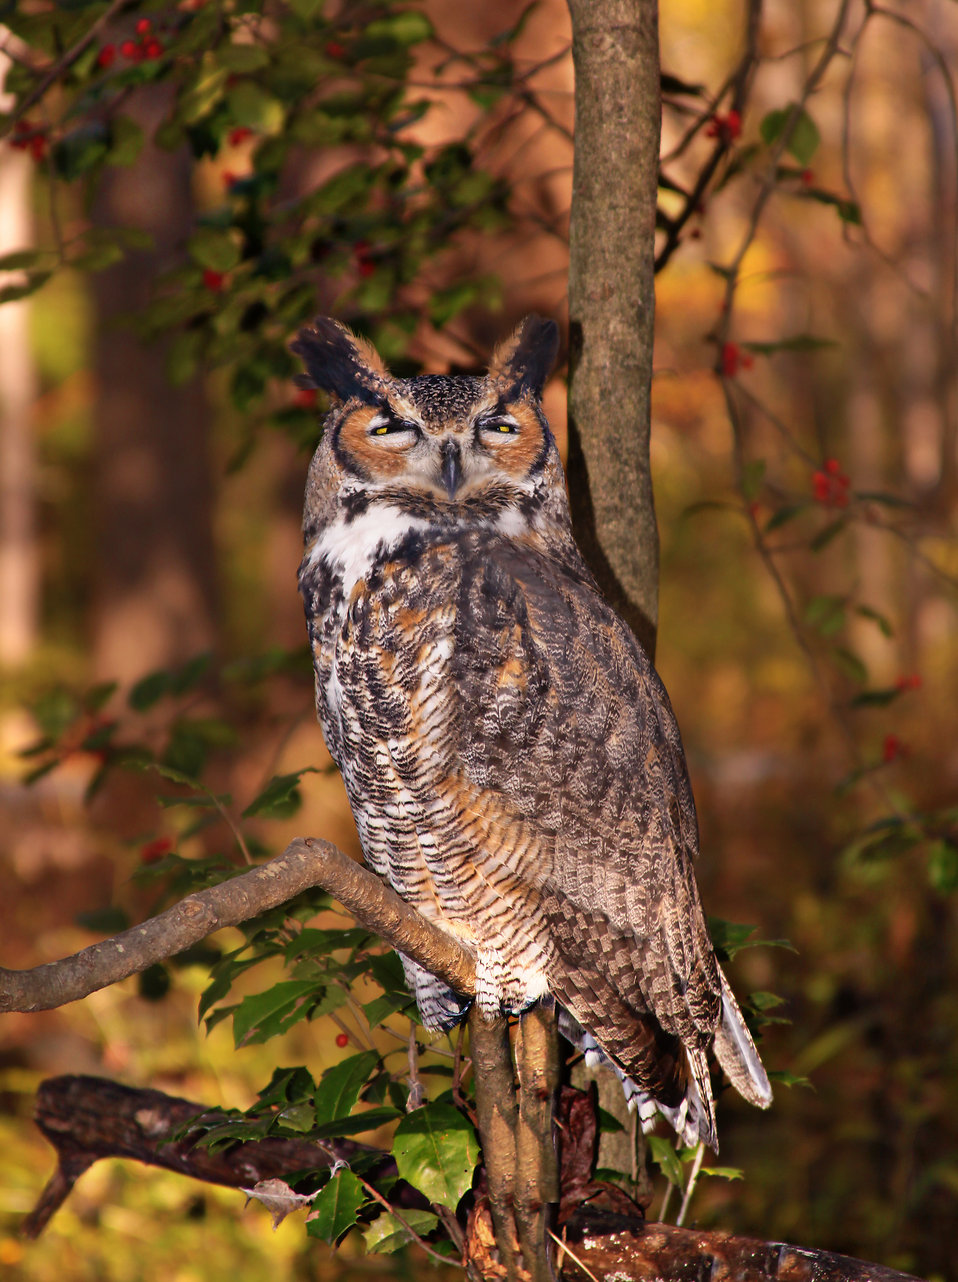 An owl sitting on a tree branch : Free Stock Photo